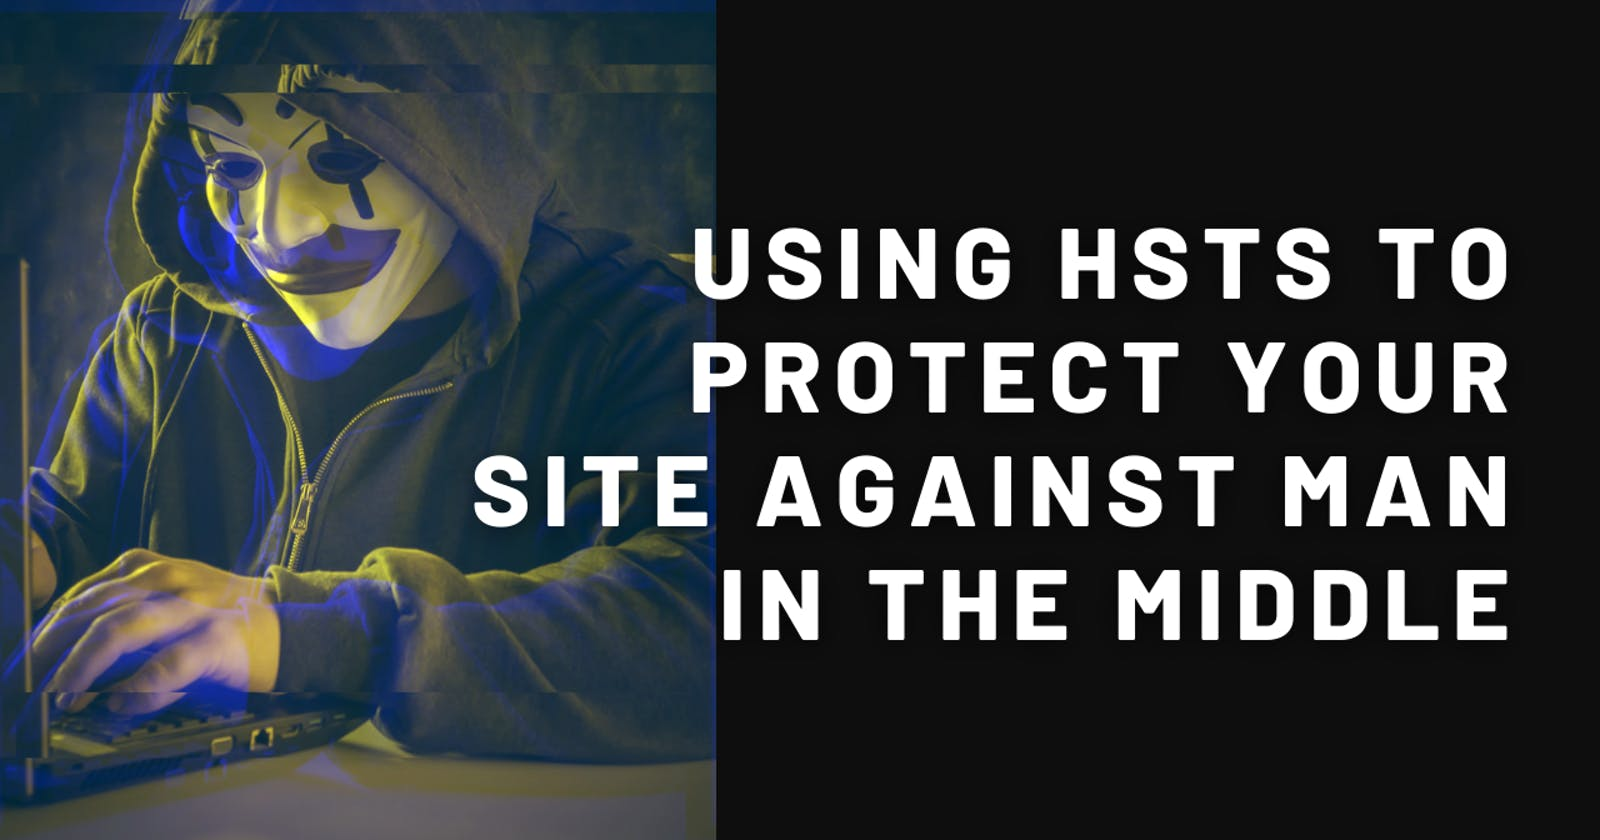 HSTS: Protecting your website against Man in the Middle attacks